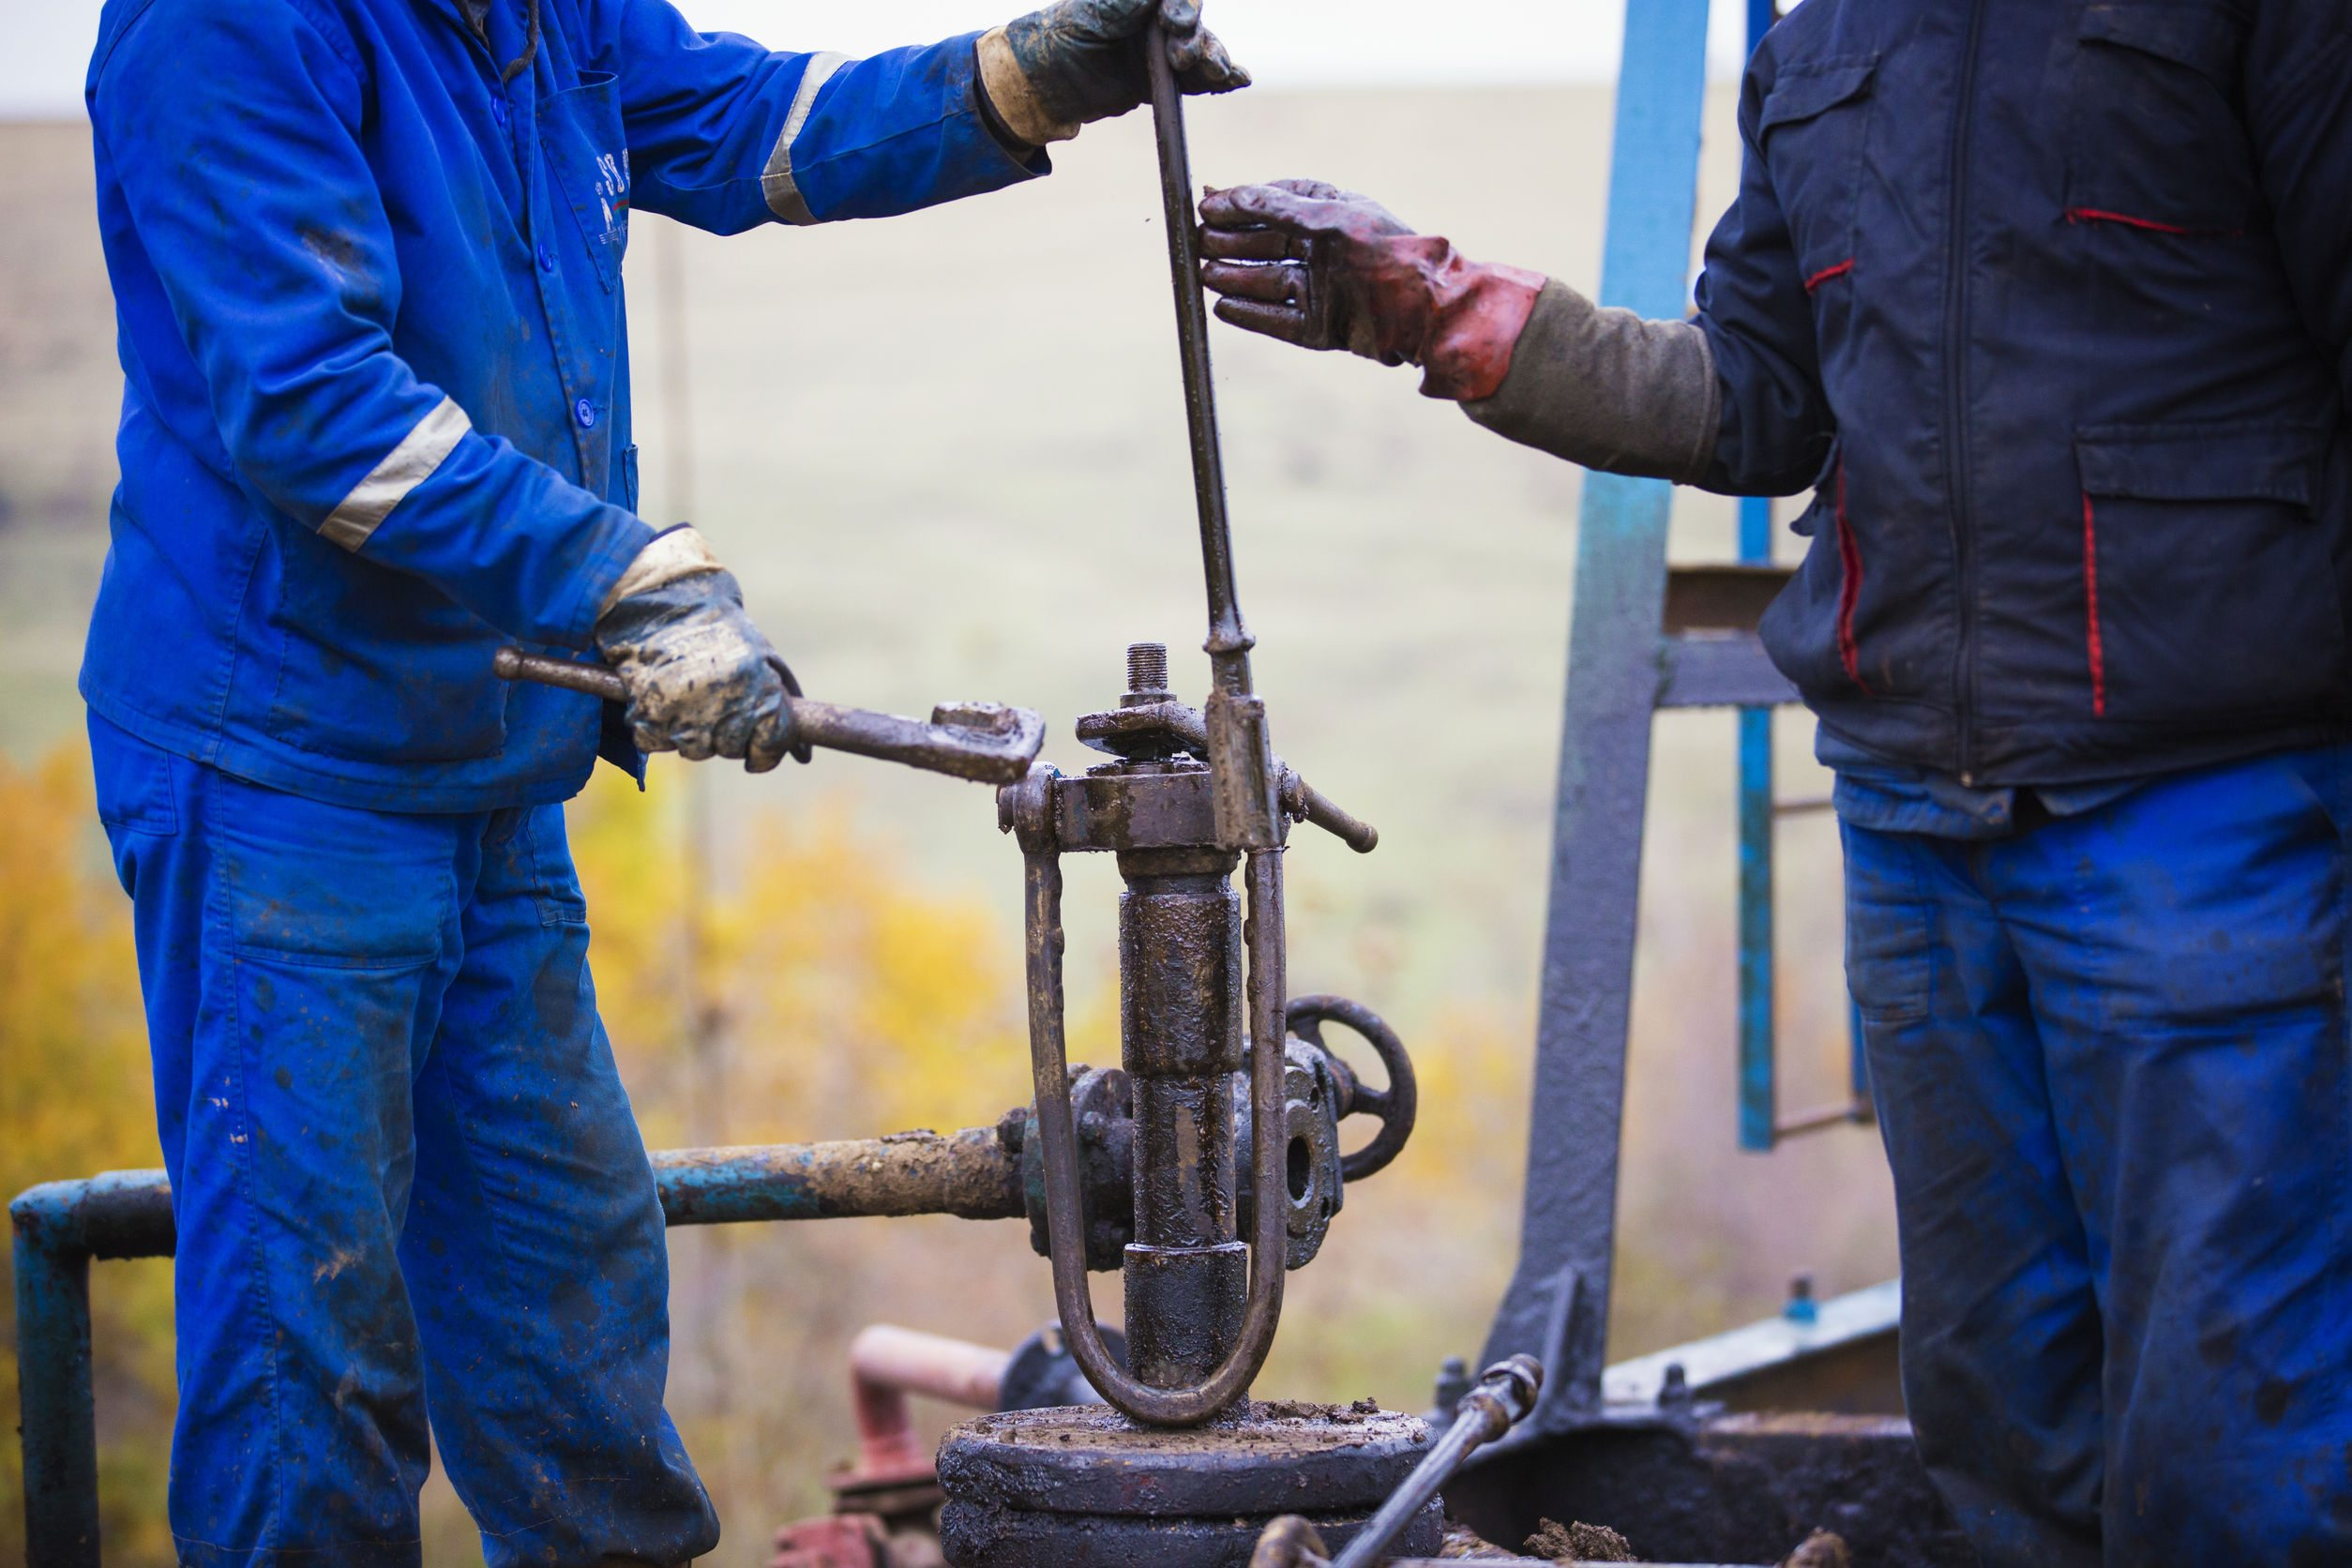 oil workers check oil pump